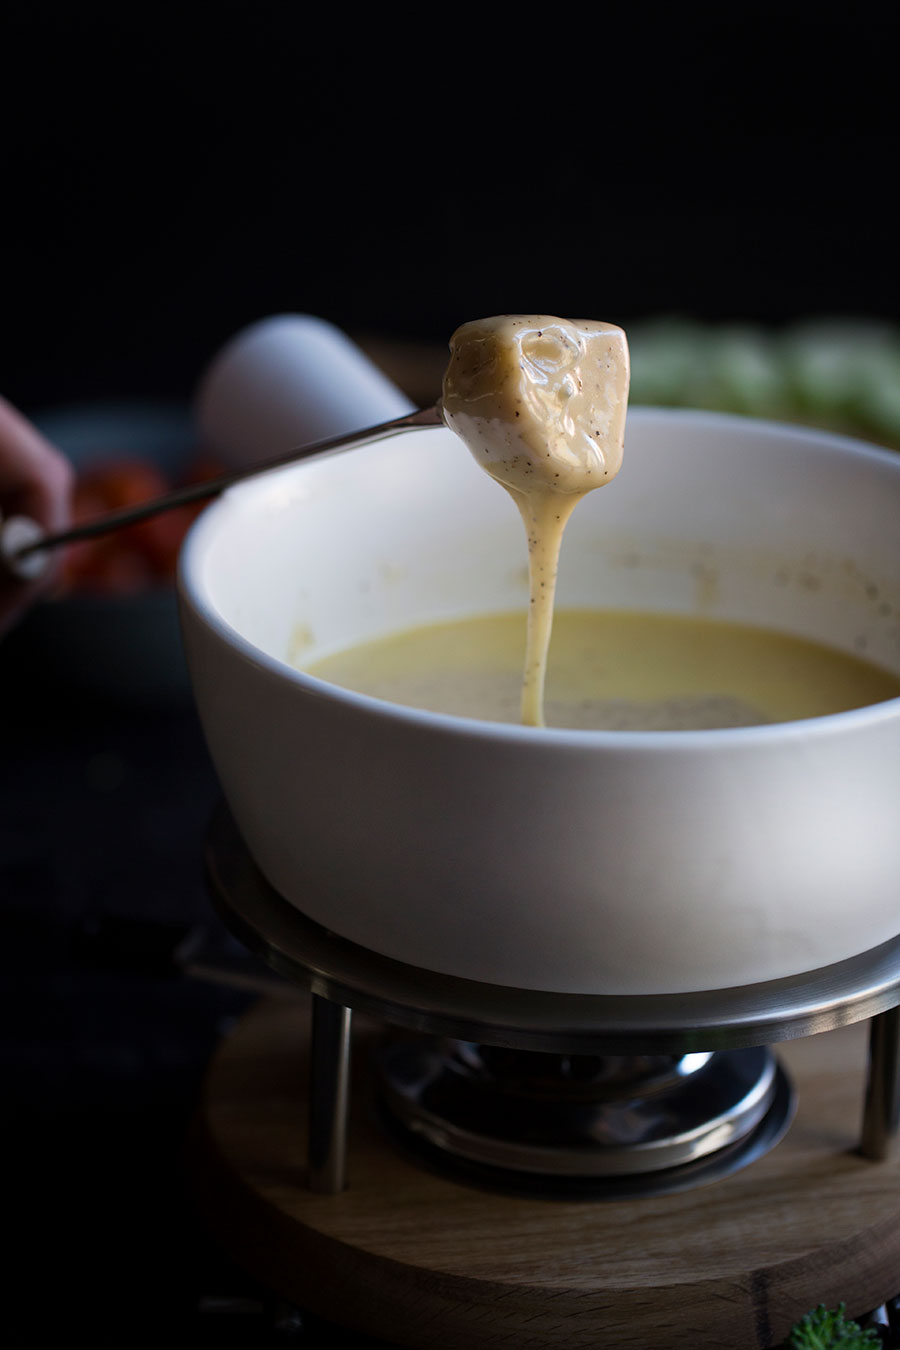 A closeup photo of gooey cheese fondue dripping off bread.